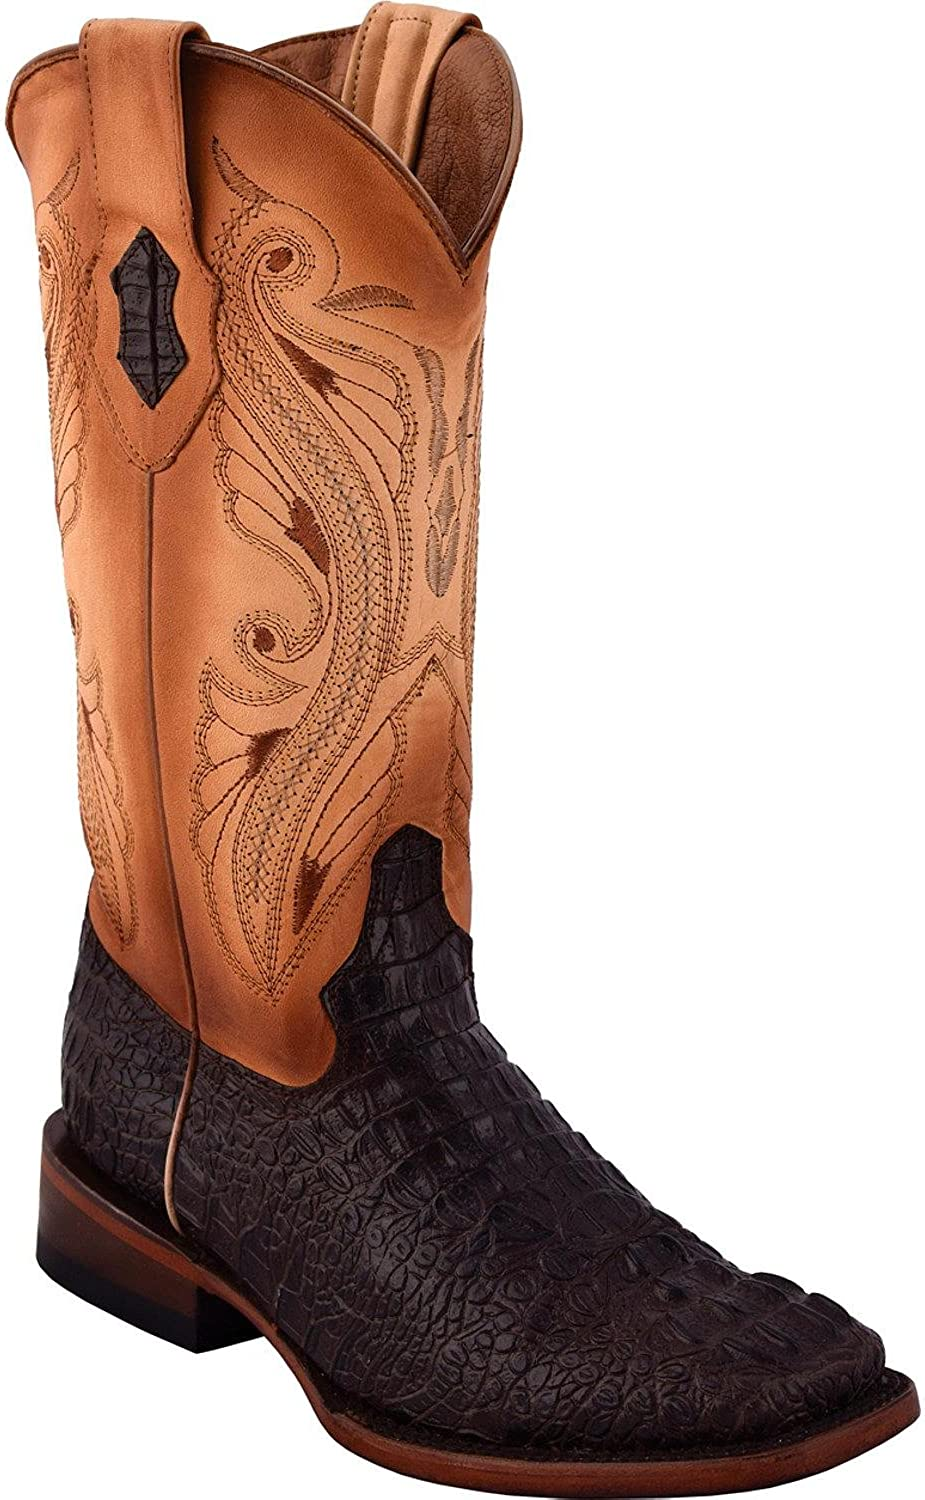 Ferrini Women's Caiman Print Cowgirl Boot Square Toe